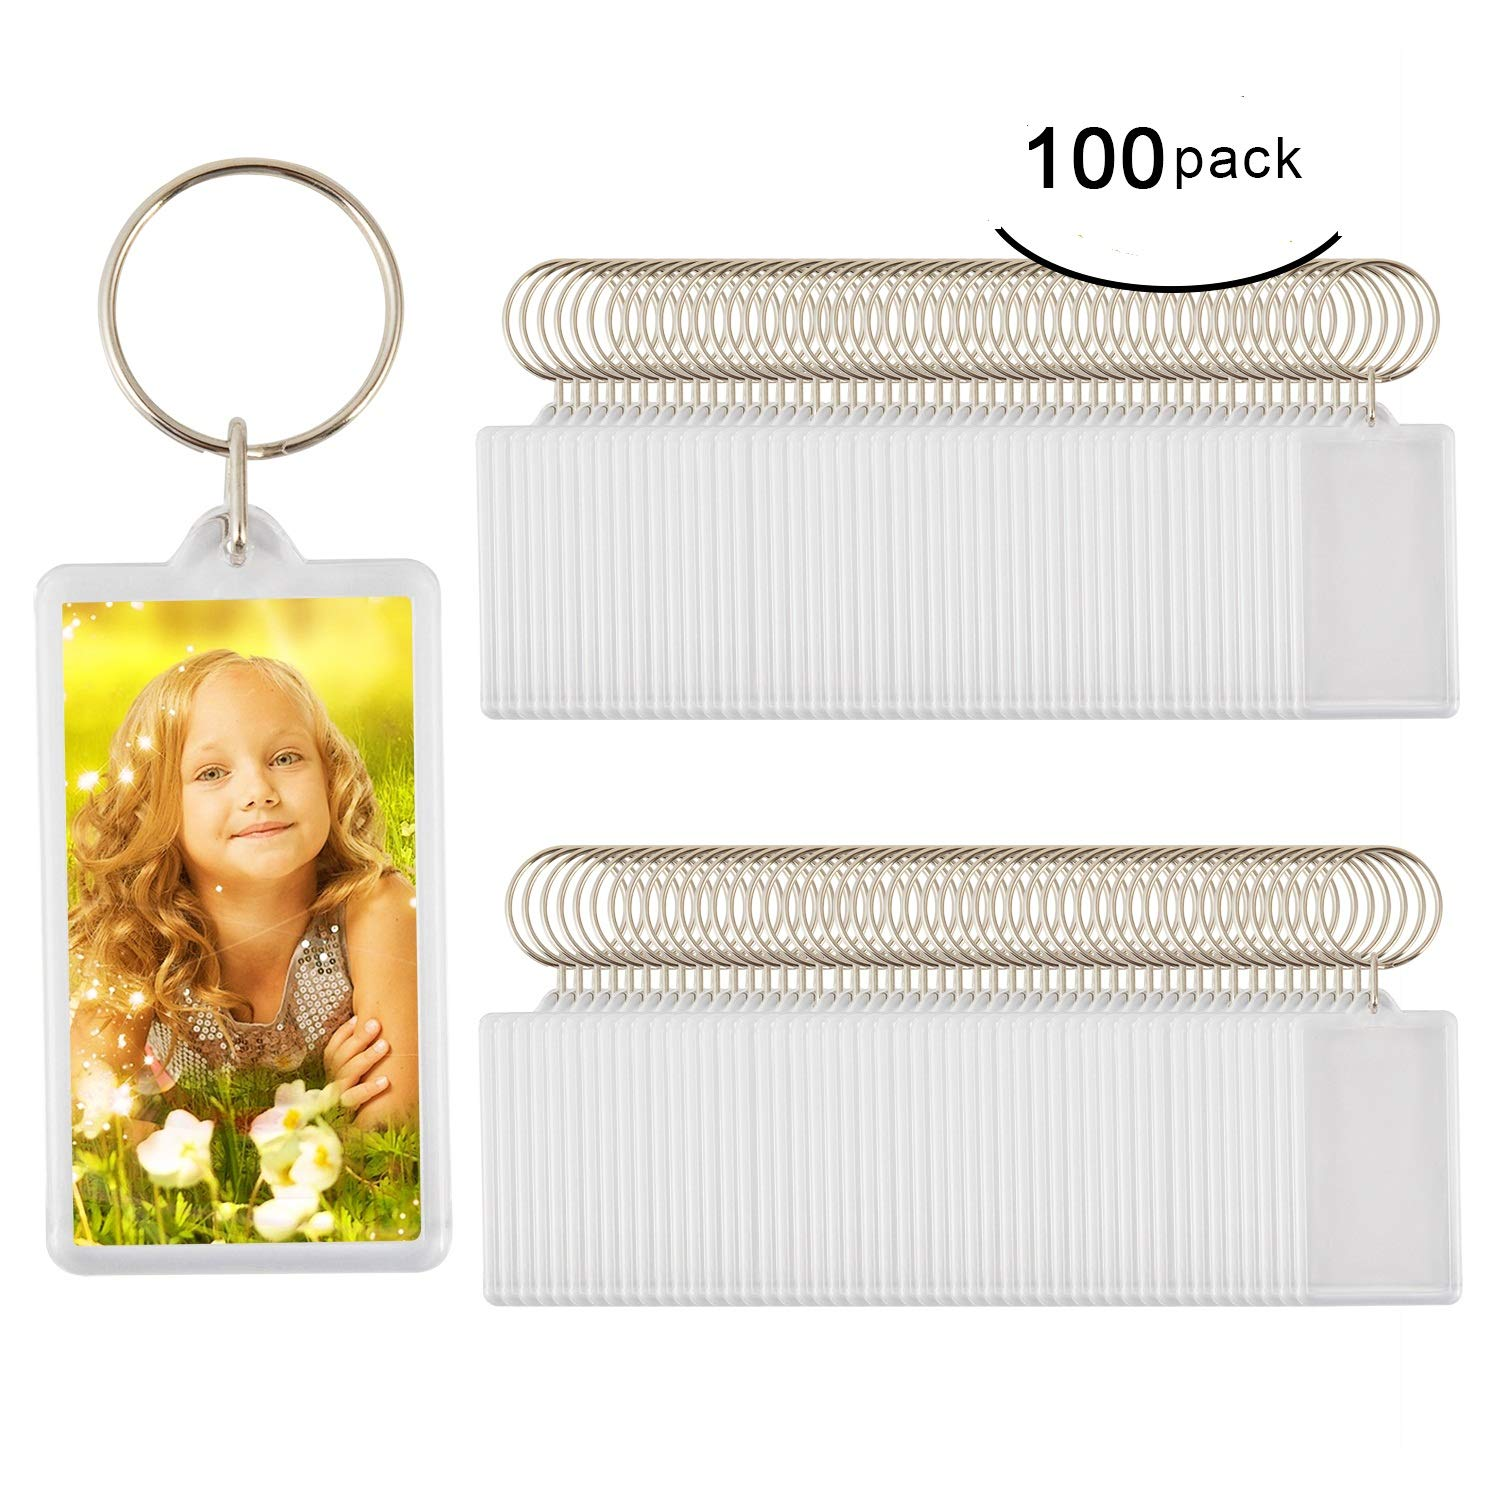 100pcs Custom Personalised Insert Photo Acrylic Blank Keyring Keychain WholeSale(size:2.51''x1.33'')